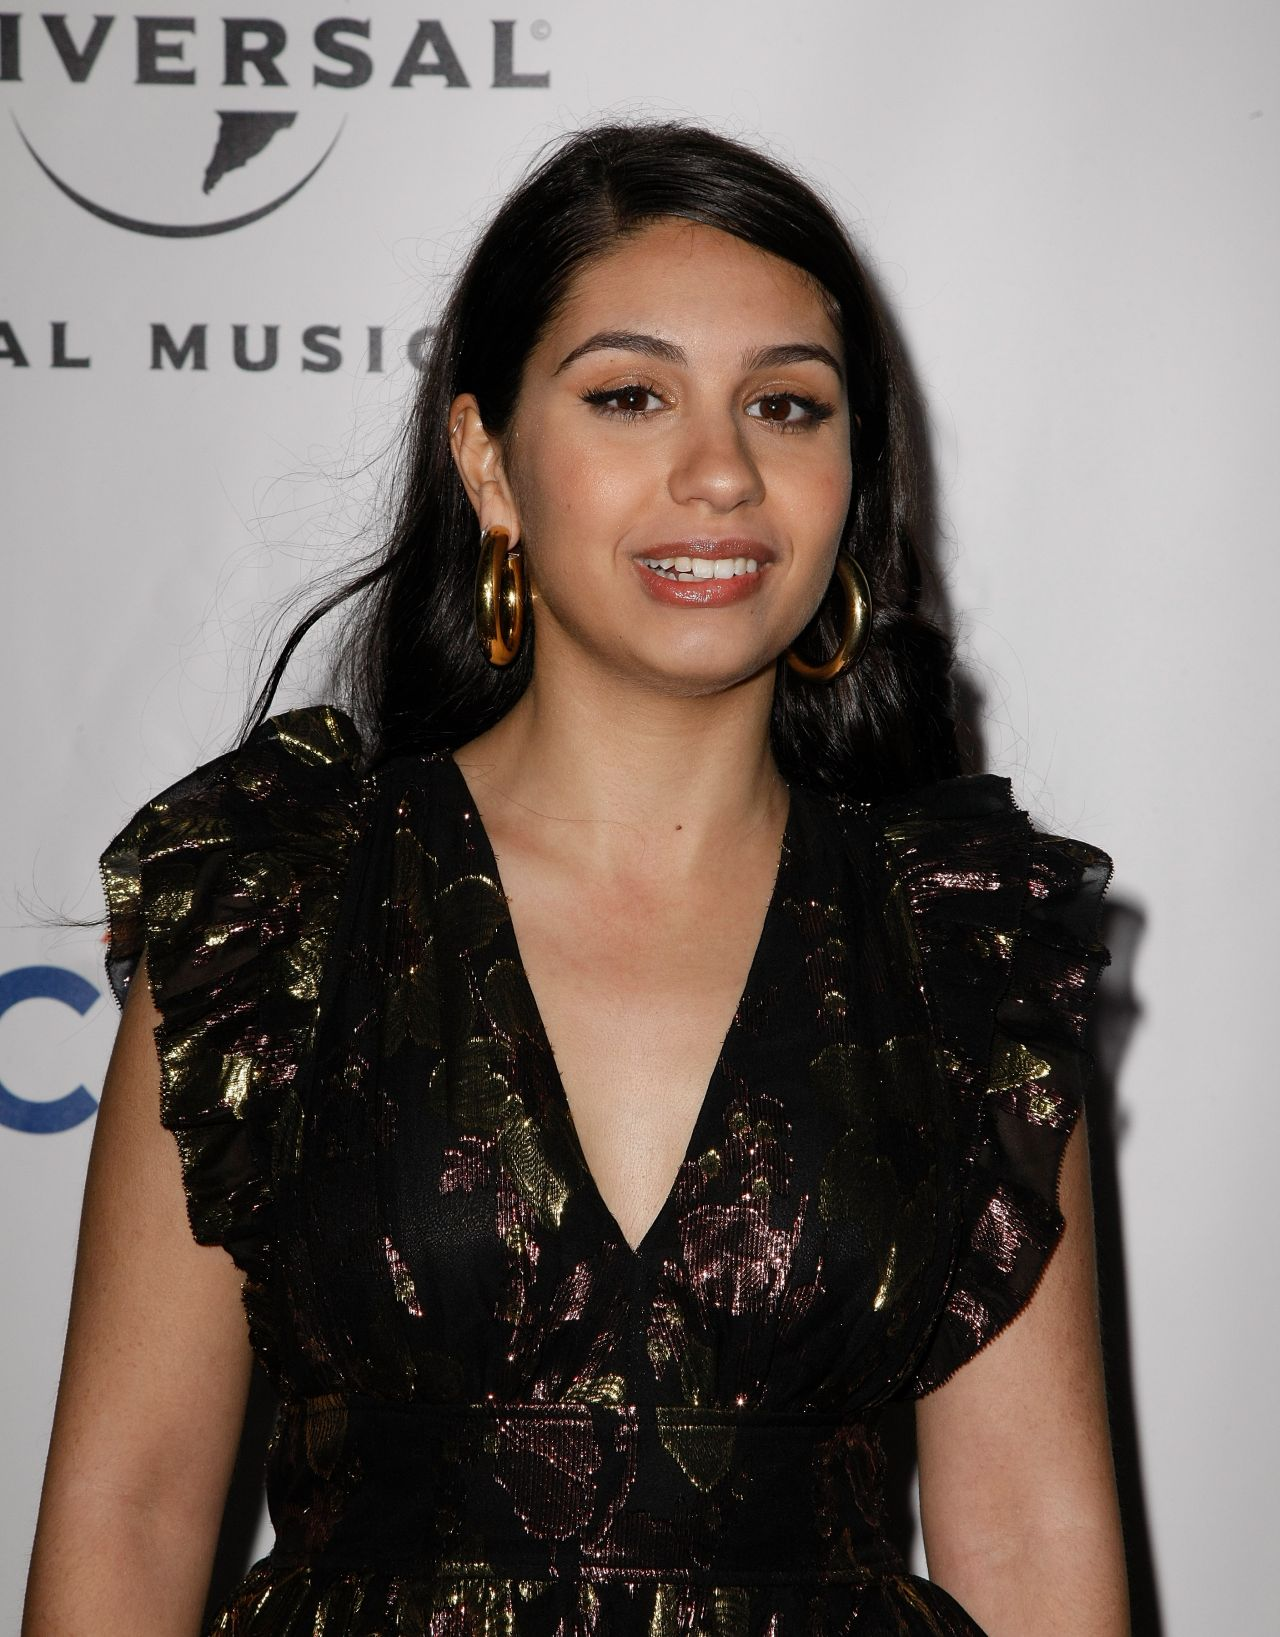 Alessia Cara Is Here for Empowerment and Self-Acceptance